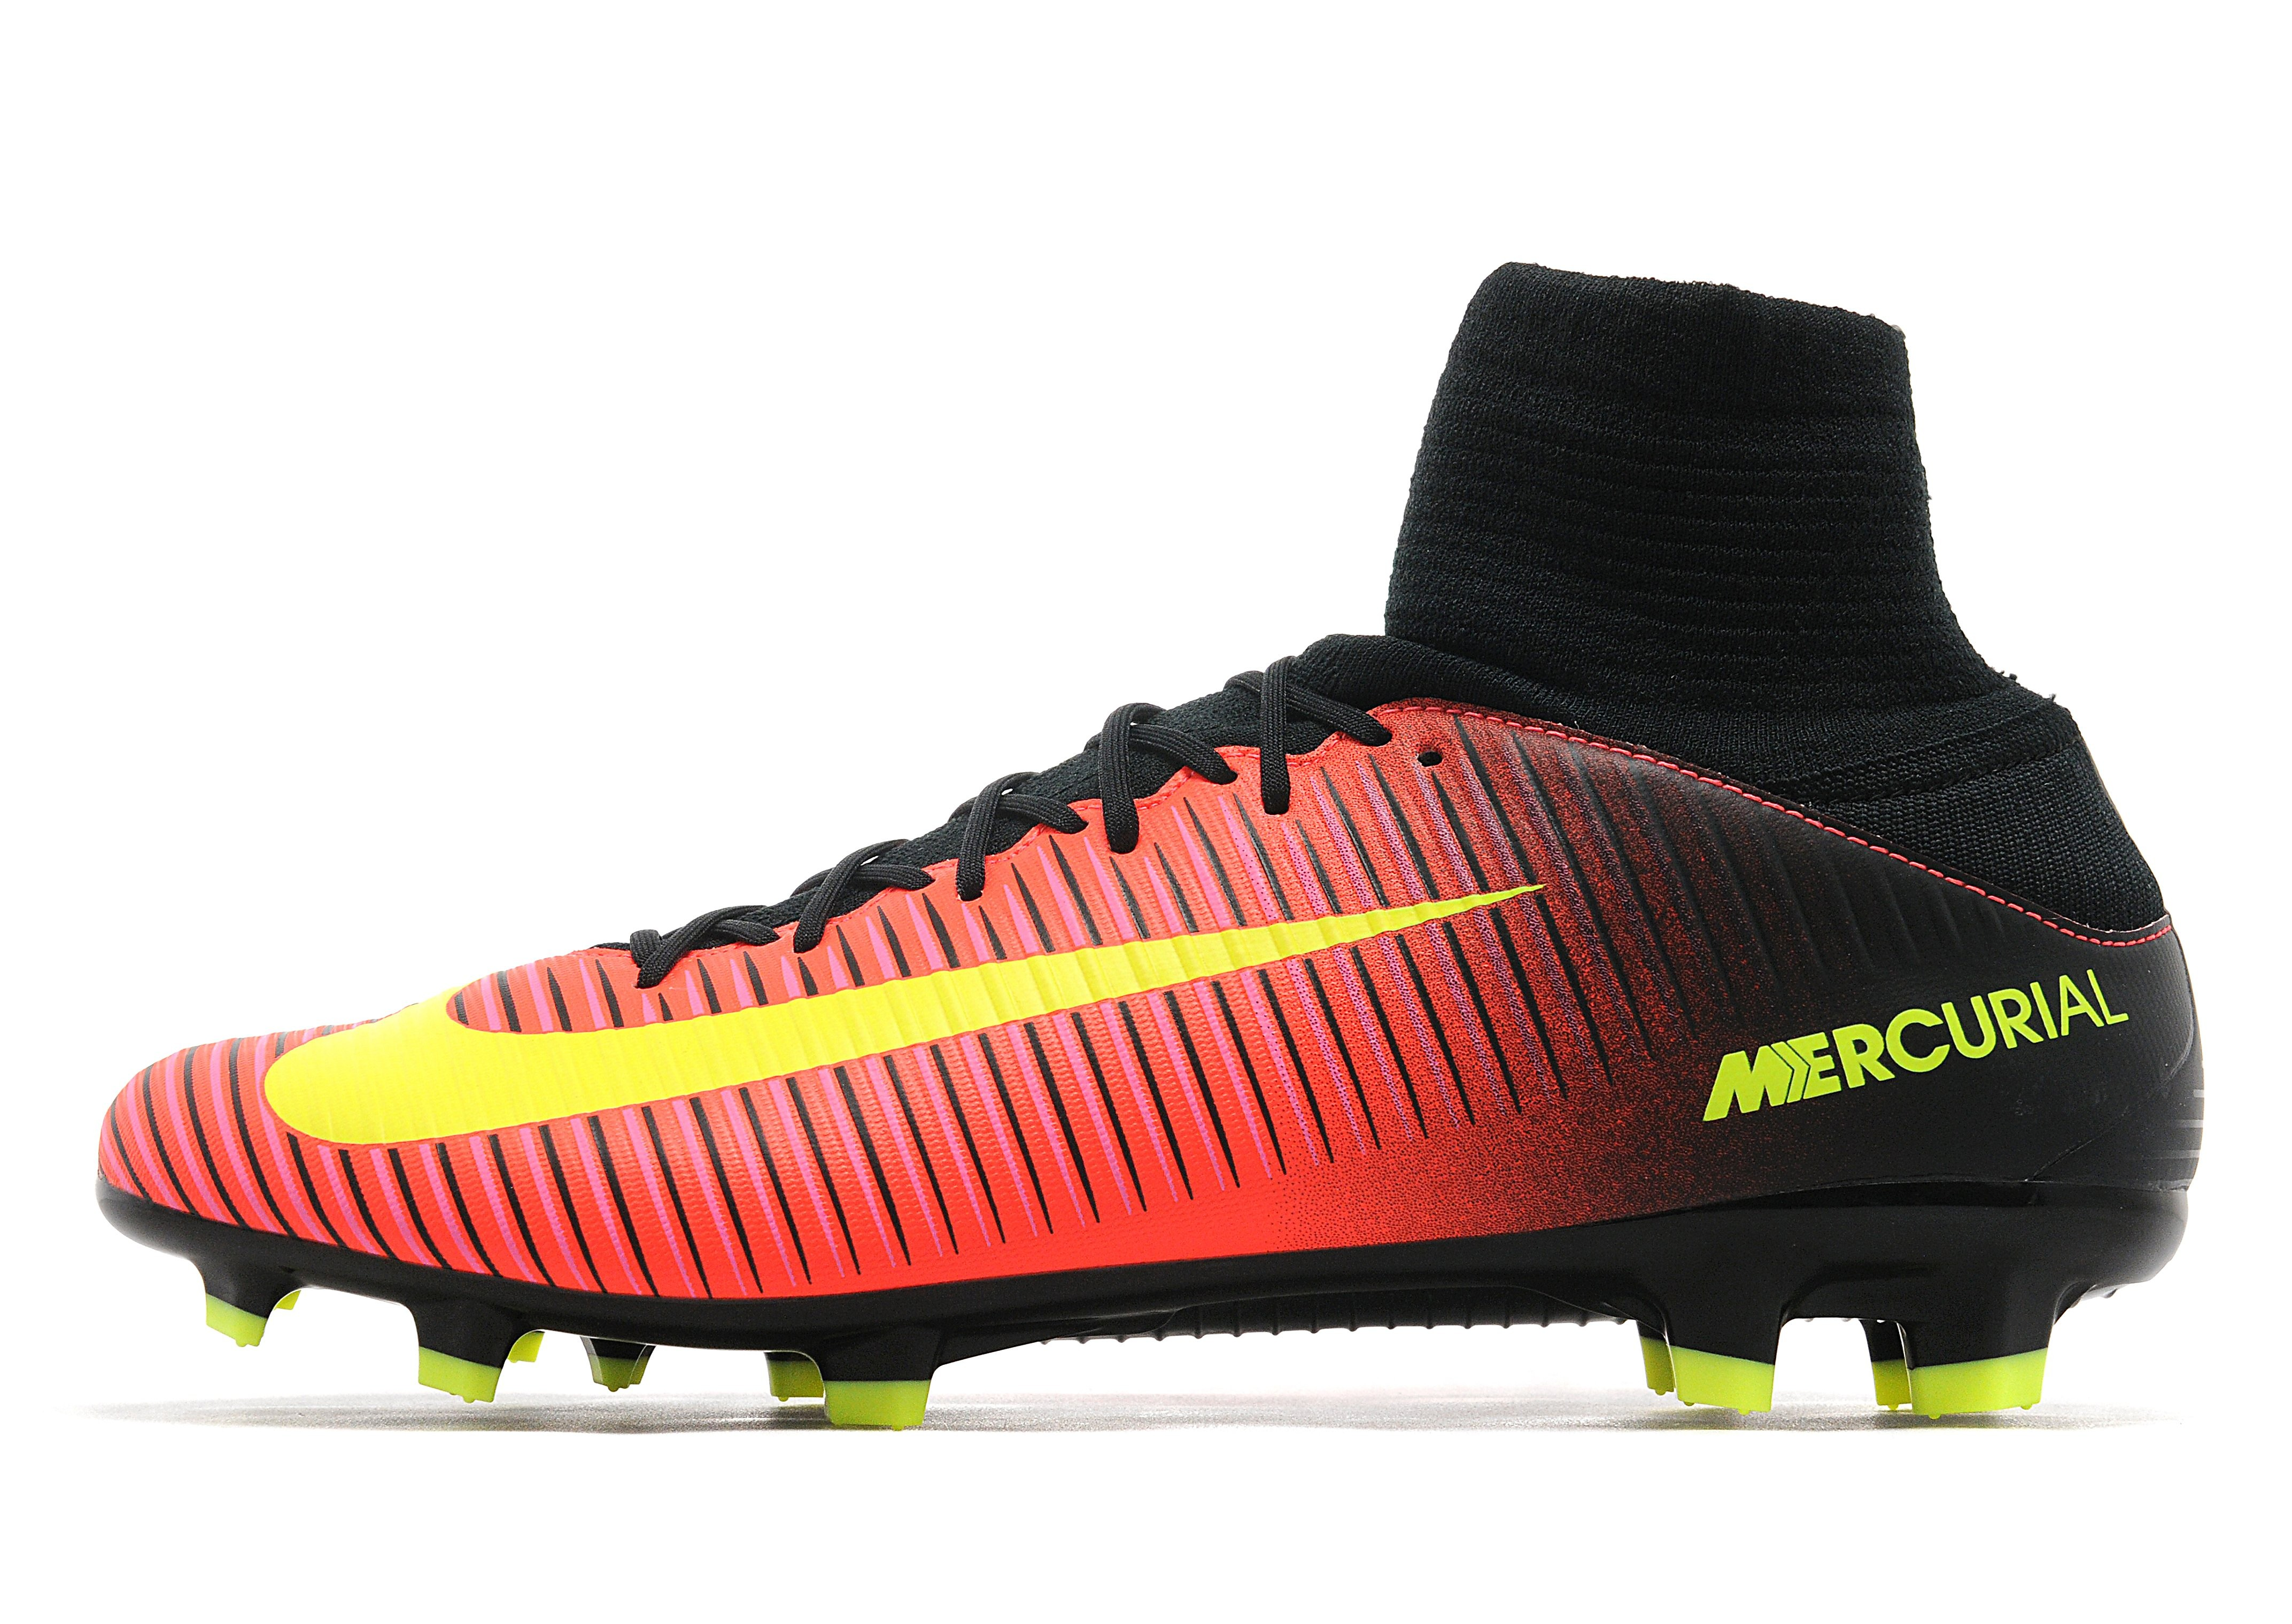 Nike Spark Brilliance Mercurial Veloce III DF FG